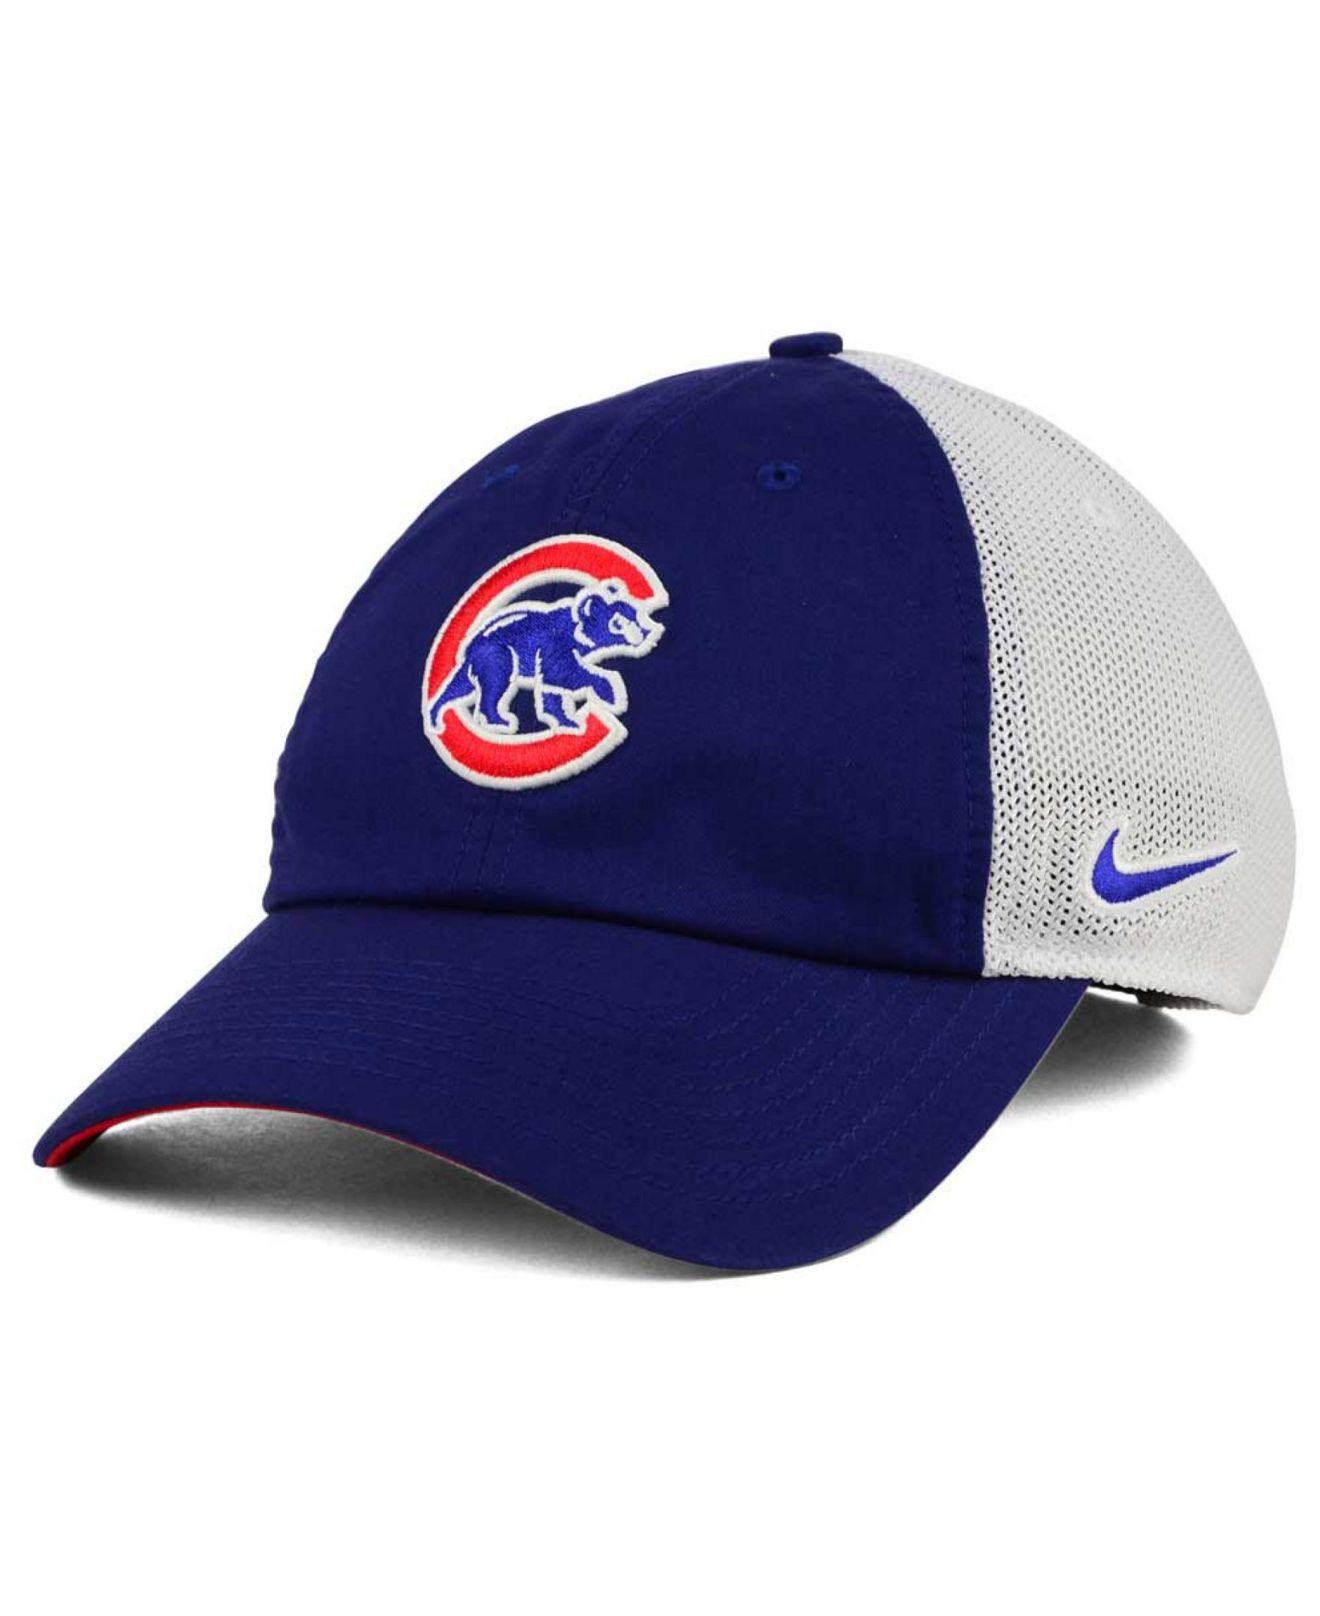 48a62523097 ... mens running cap white 68f38 ae9f9  get lyst nike chicago cubs dri fit  mesh swoosh adjustable cap in blue ae17d 779dc